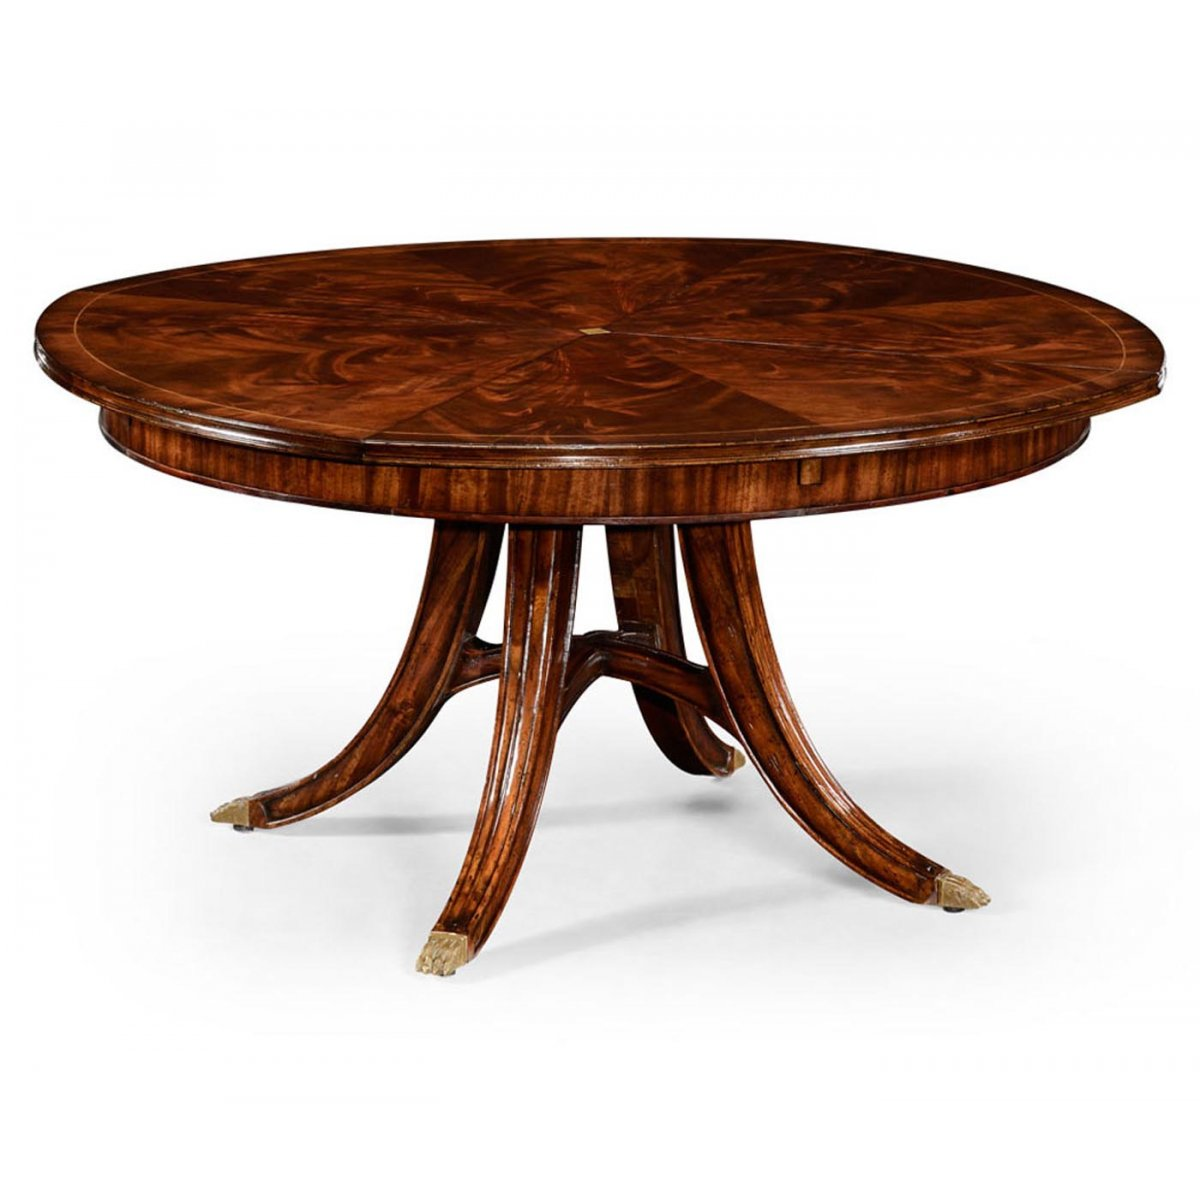 8 10 seater round extending dining table swanky interiors Round dinner table for 10